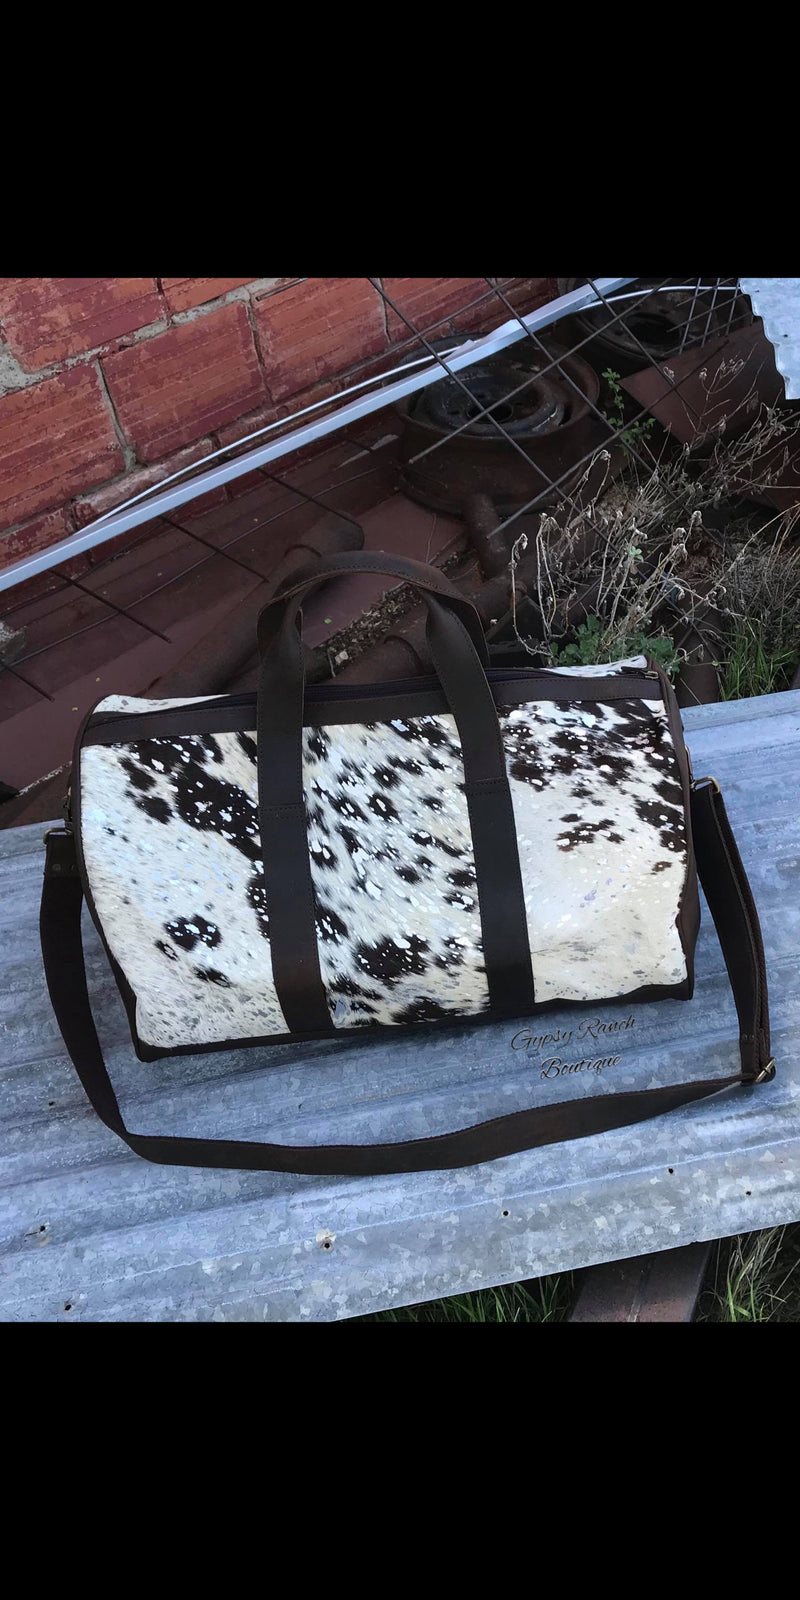 Reliance Ranch Cowhide Acid Wash Weekender Duffle Bag